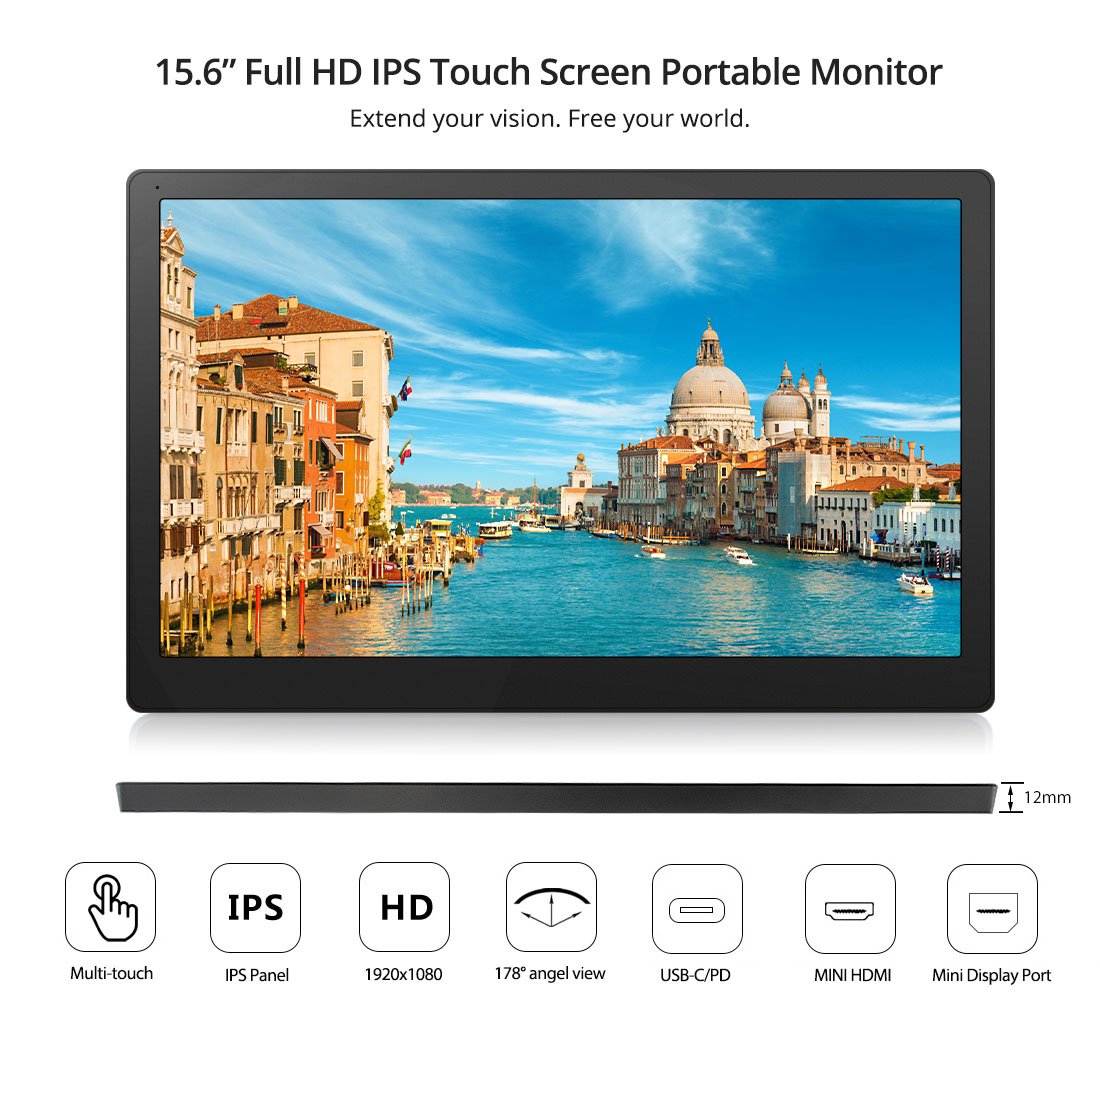 Elecrow Computer Portable Monitors 1920x1080 HD IPS 15.6 Inch Monitor With HDMI Type C Connector 15.6'' LCD Touch Screen Display